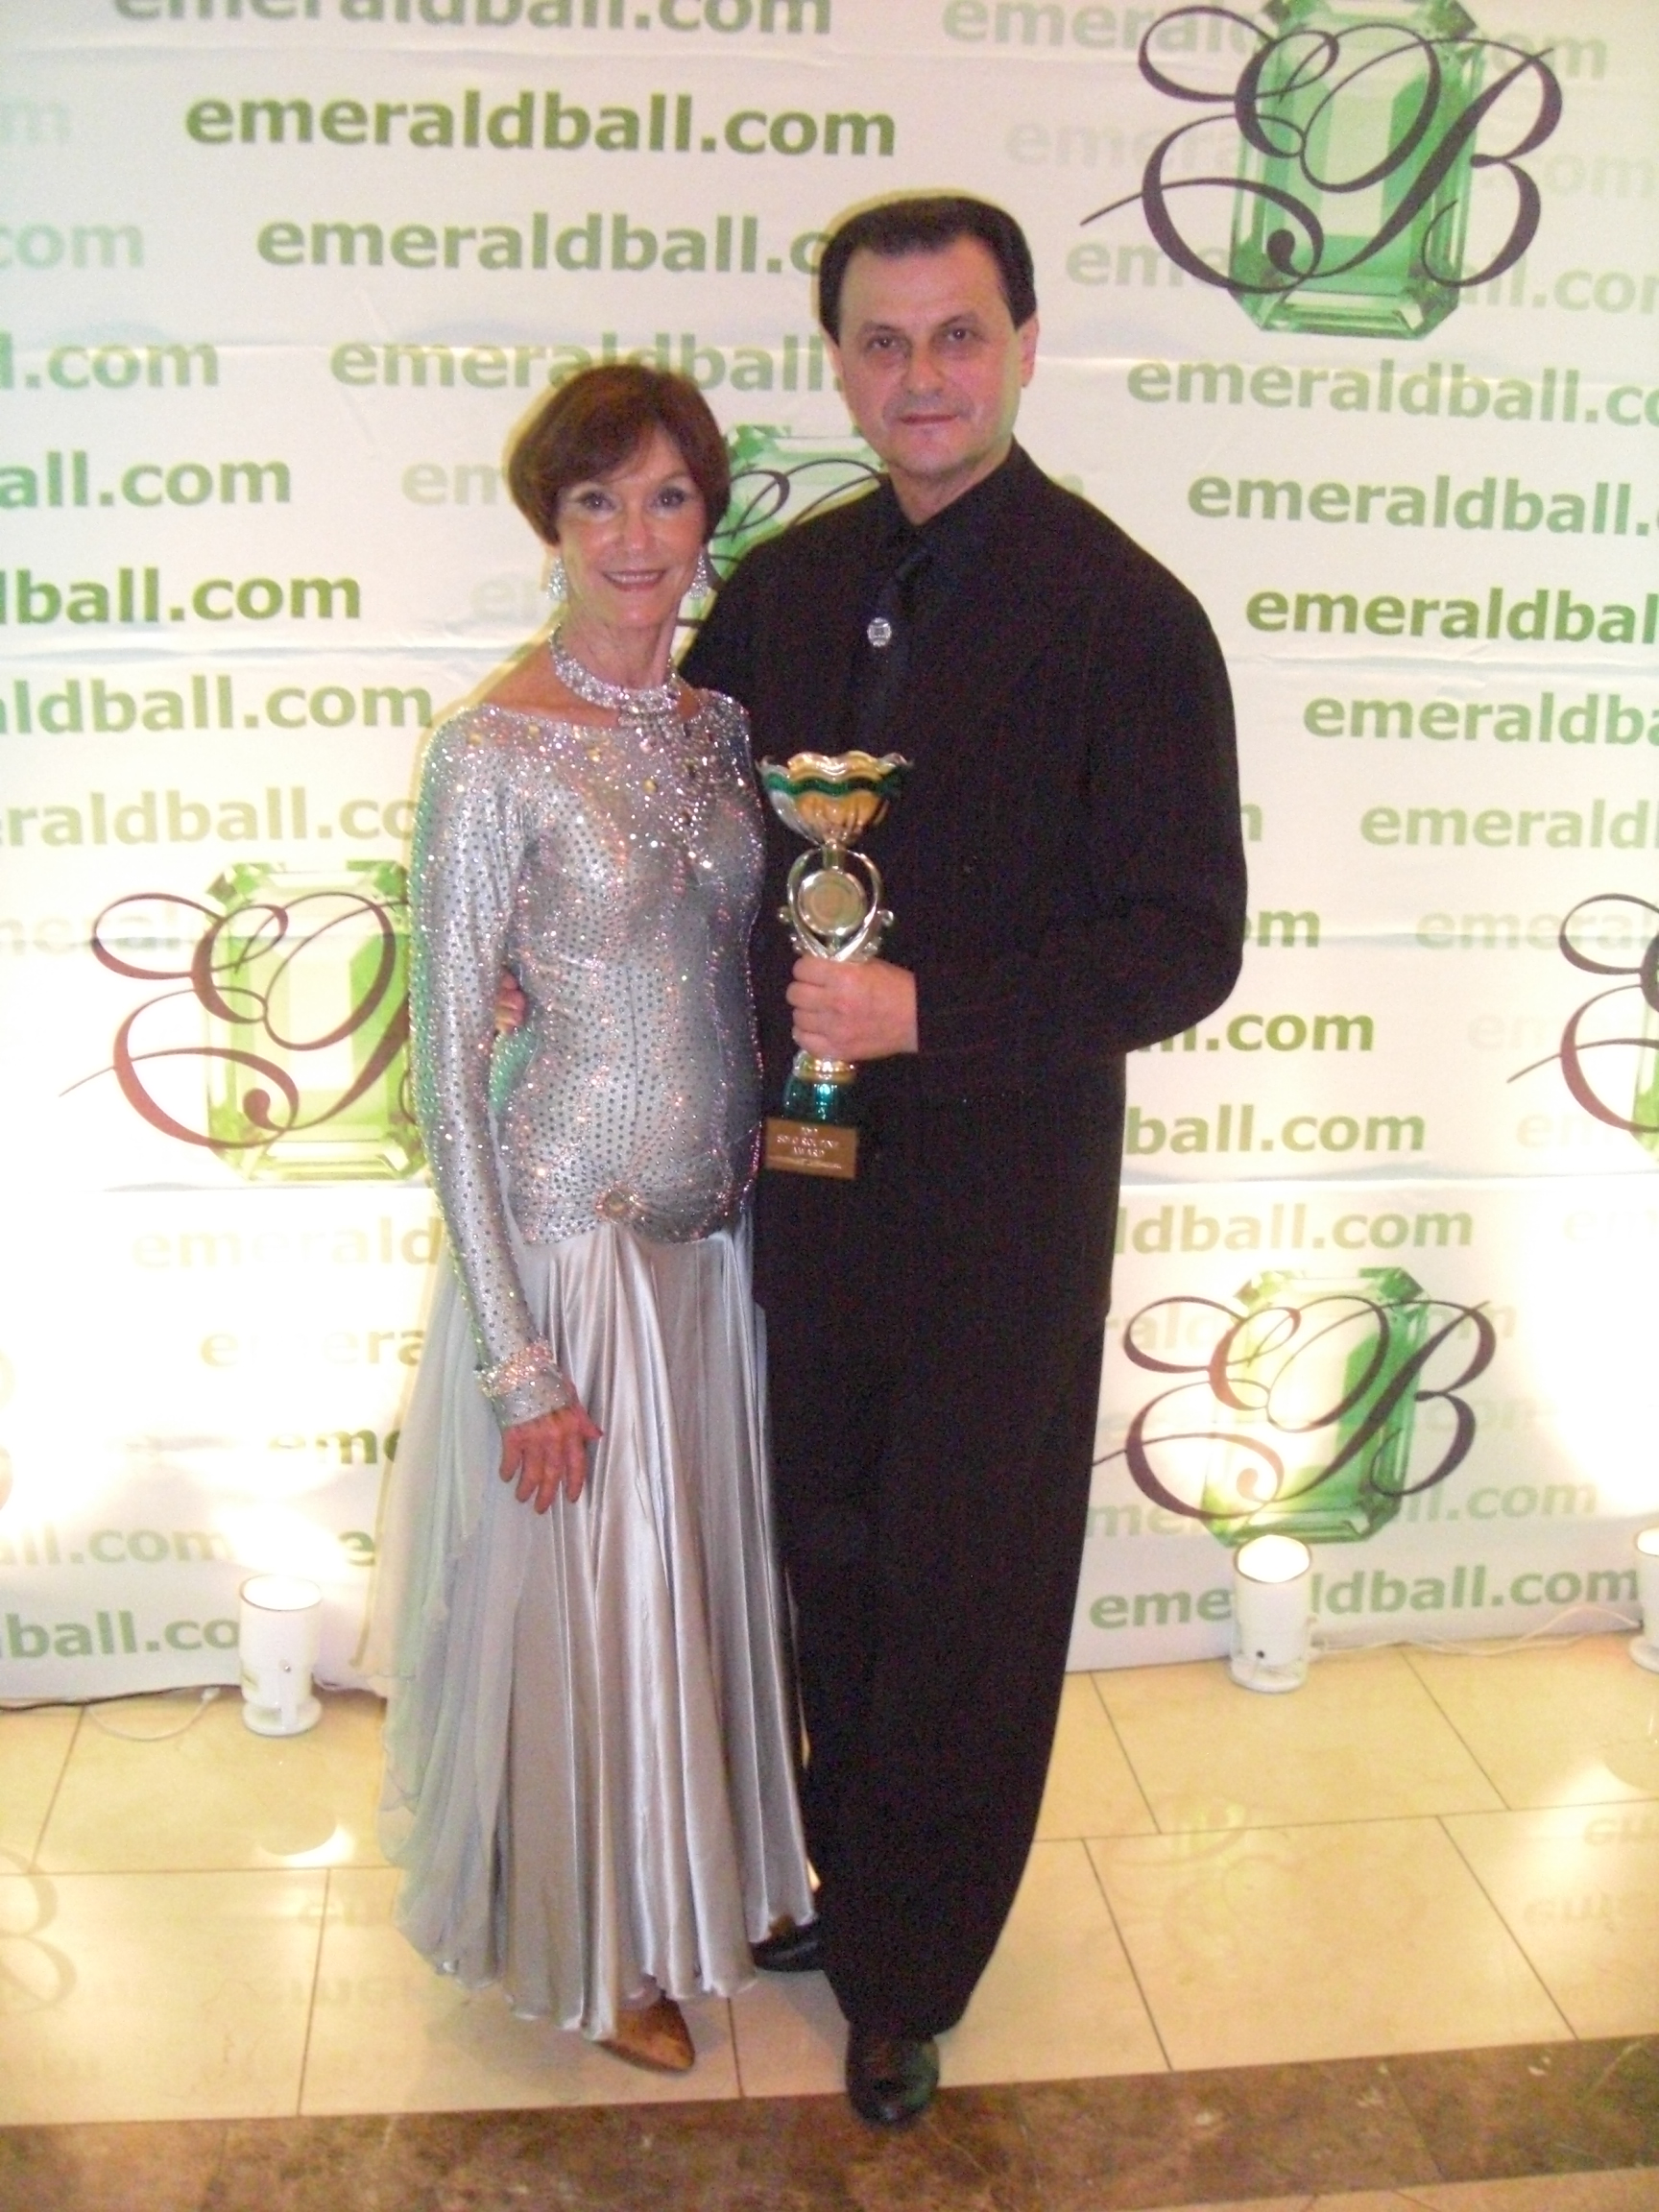 Emerald Ball Competition. Anne with Top Student Award and Vassily with Top Teacher Award.